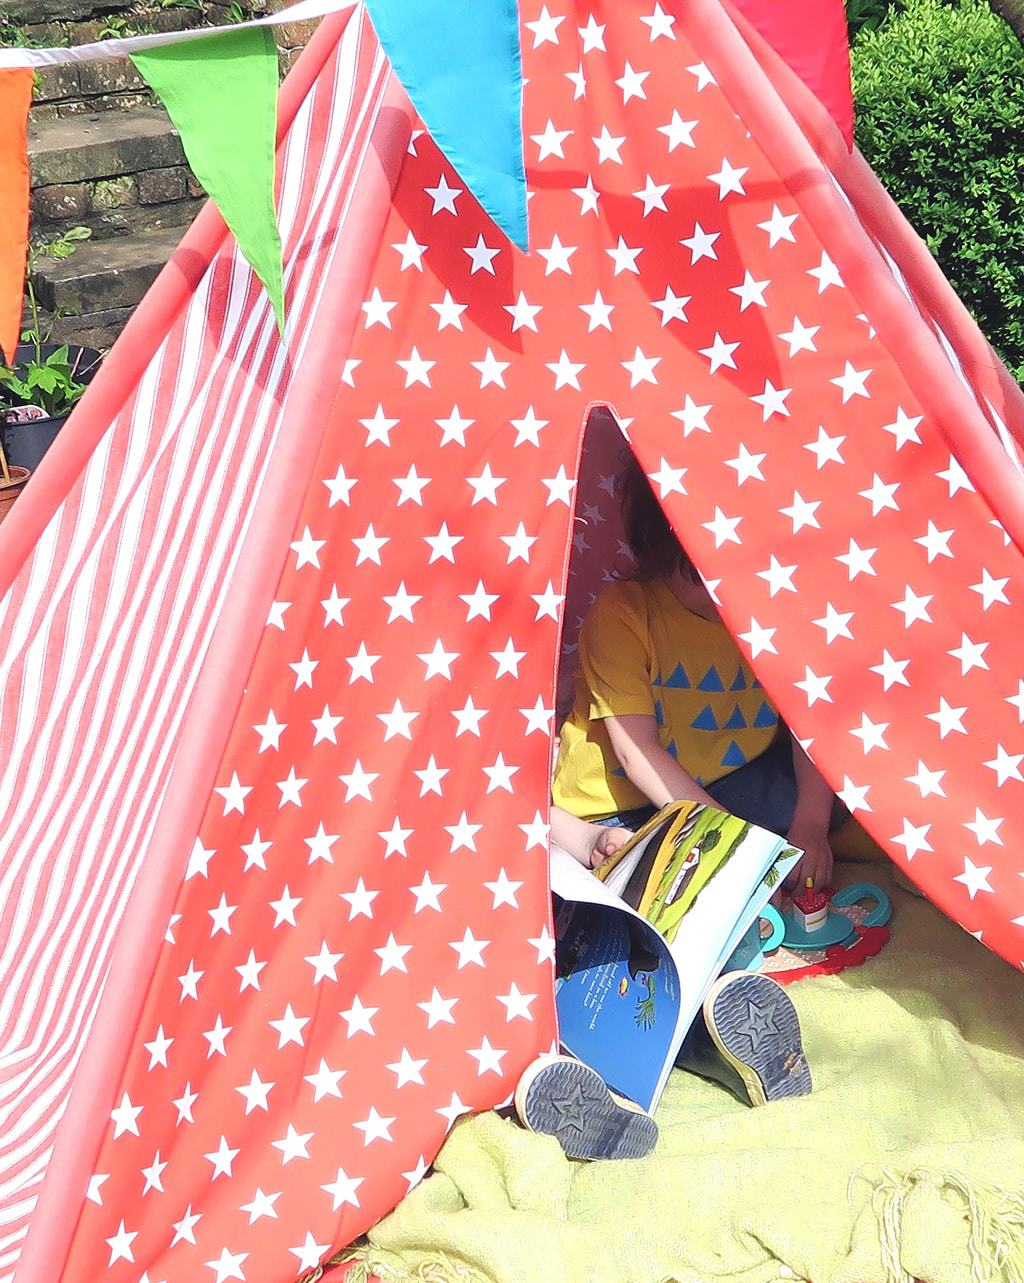 squash-and-a-squeeze-in-the-teepee